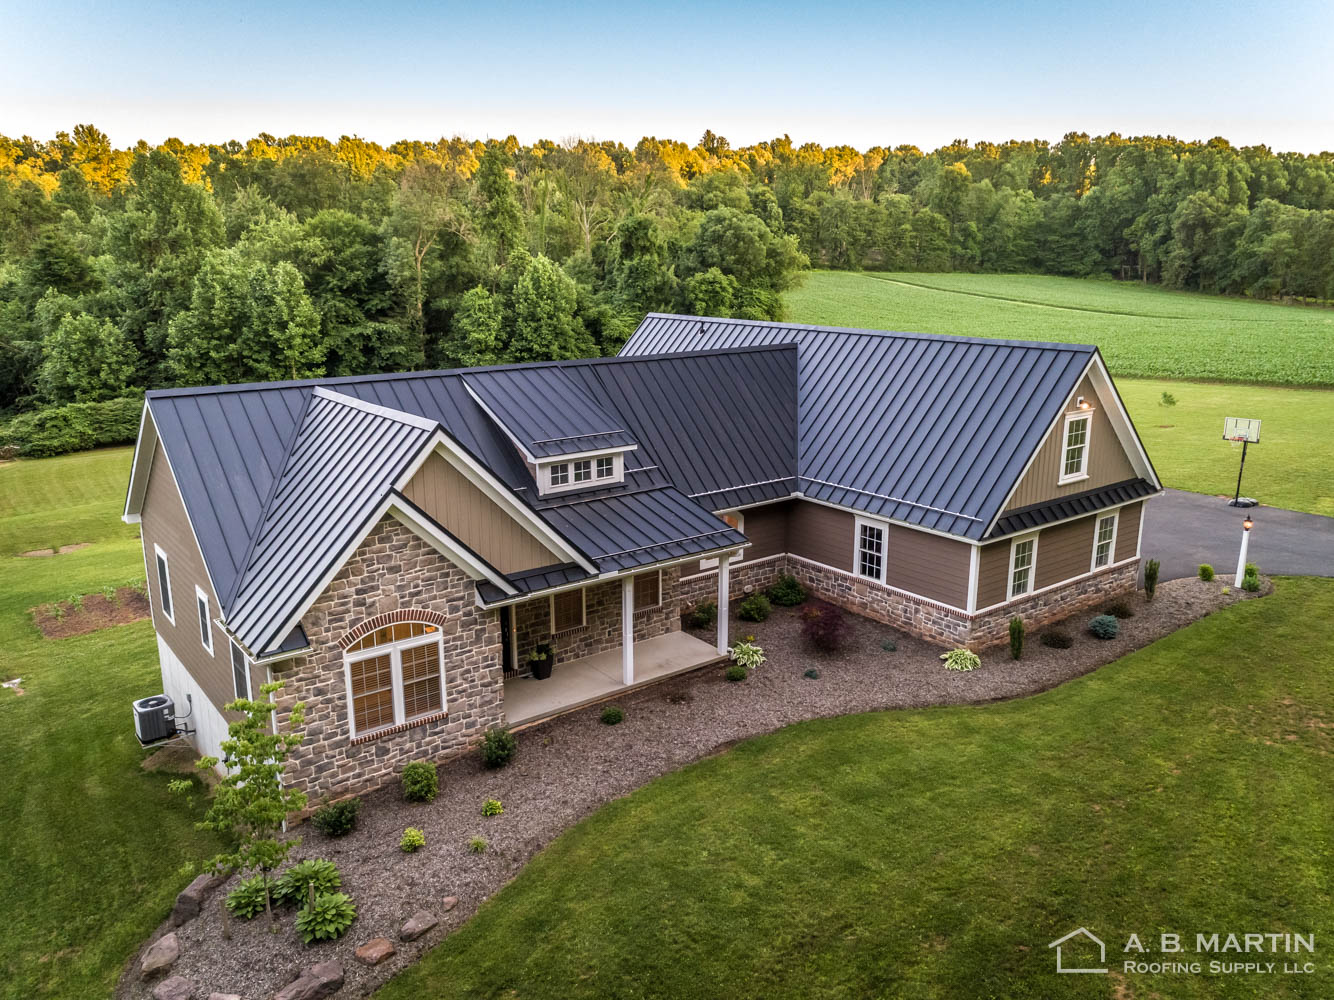 Drone shot of house with Textured Black ABSeam